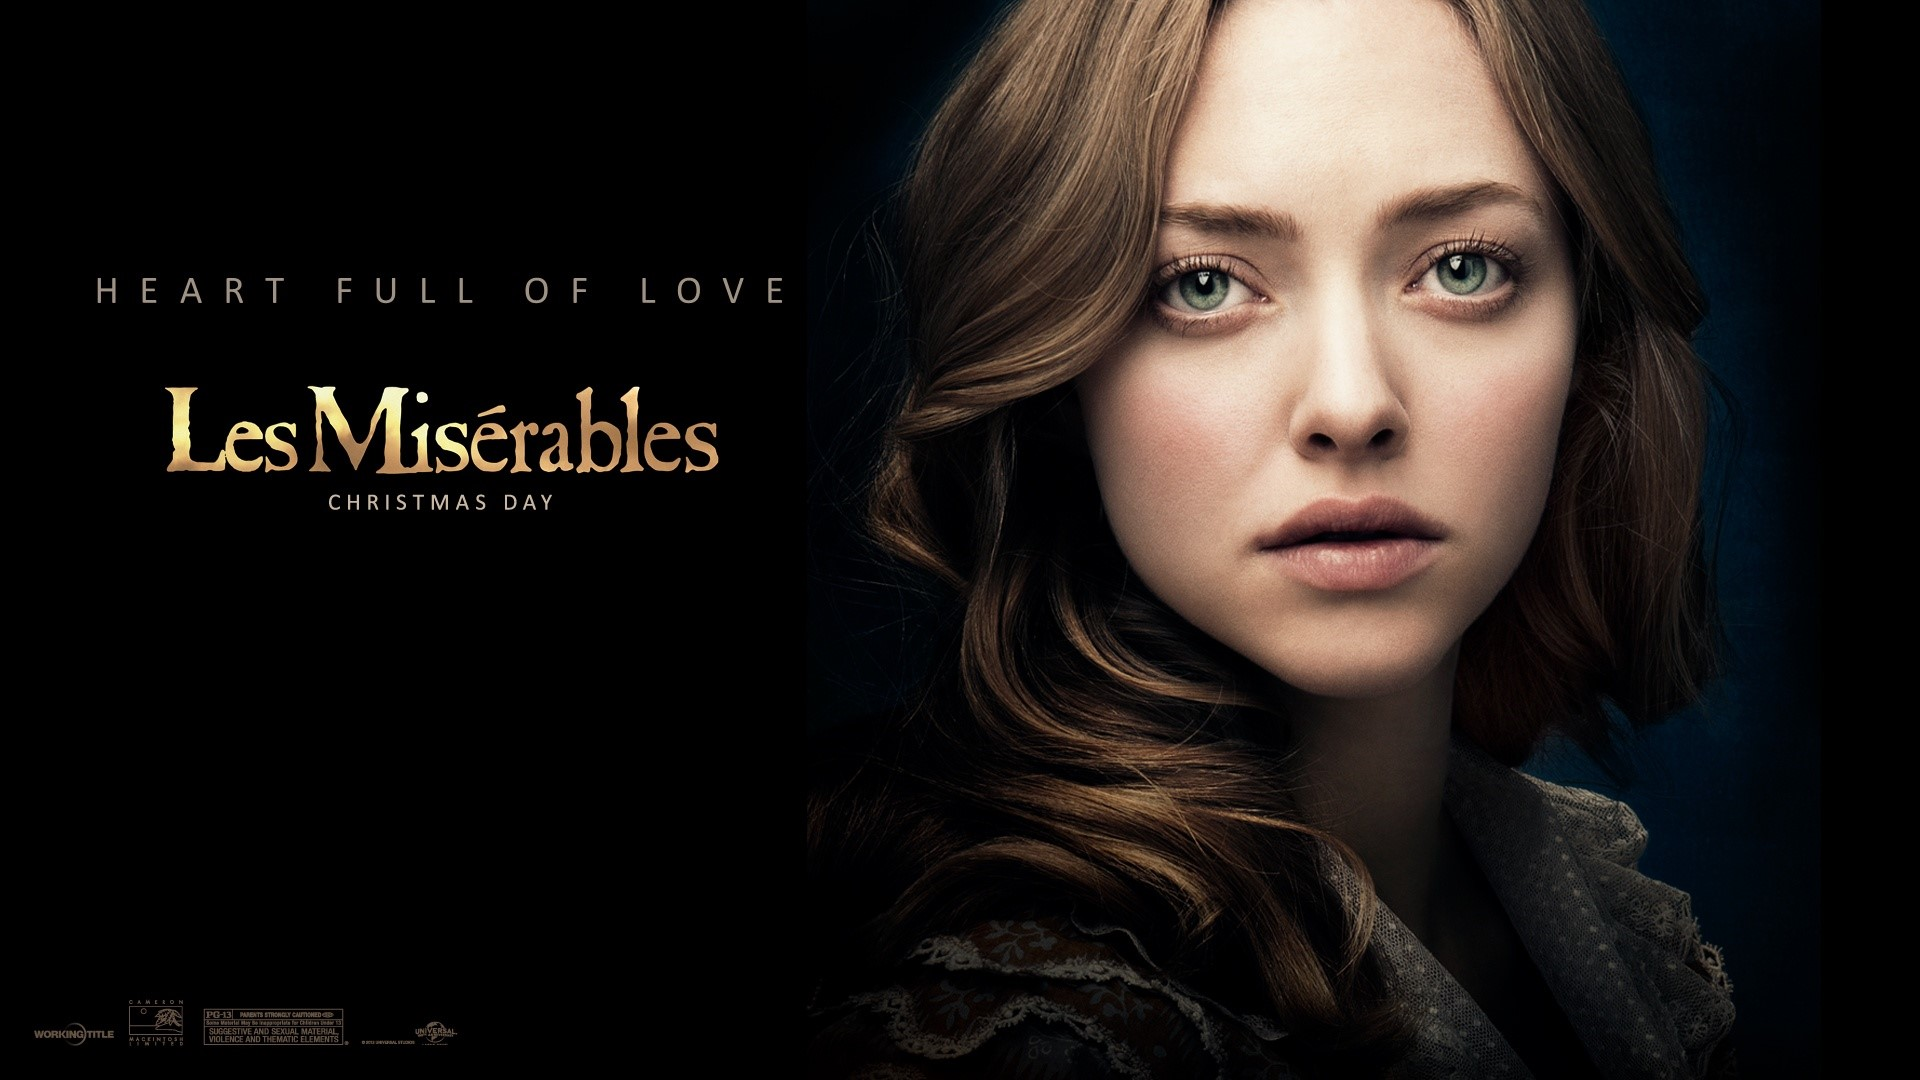 Wallpaper Amanda Seyfried como Fantine Images